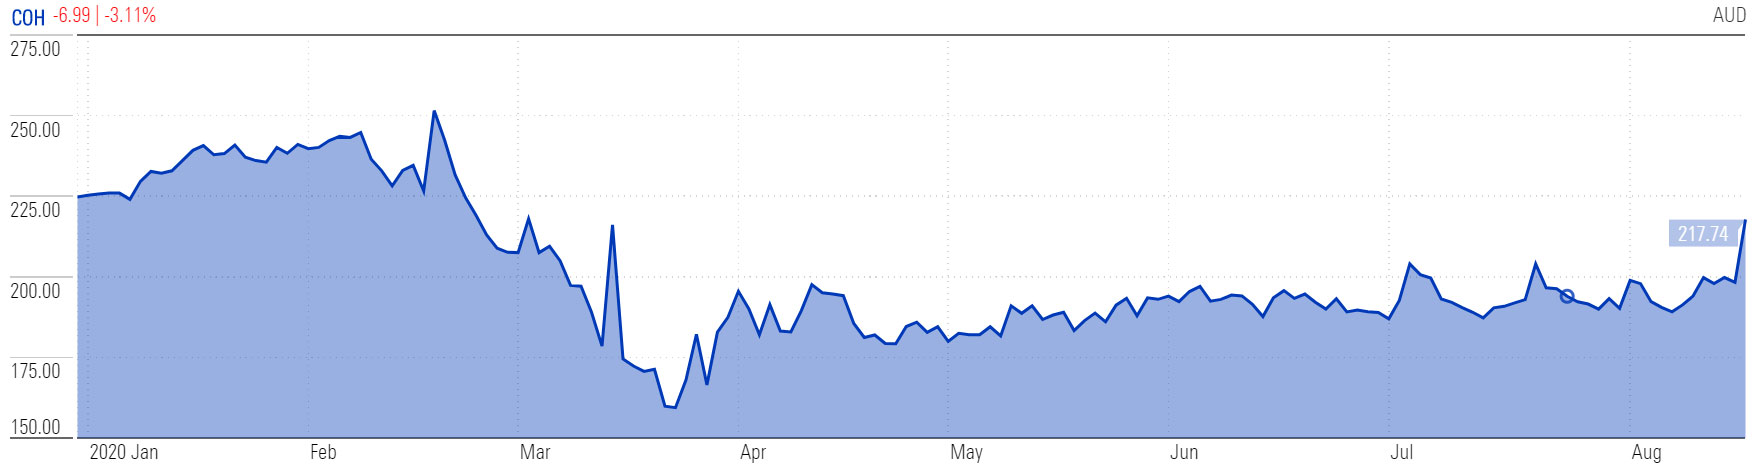 cochlear share price ytd